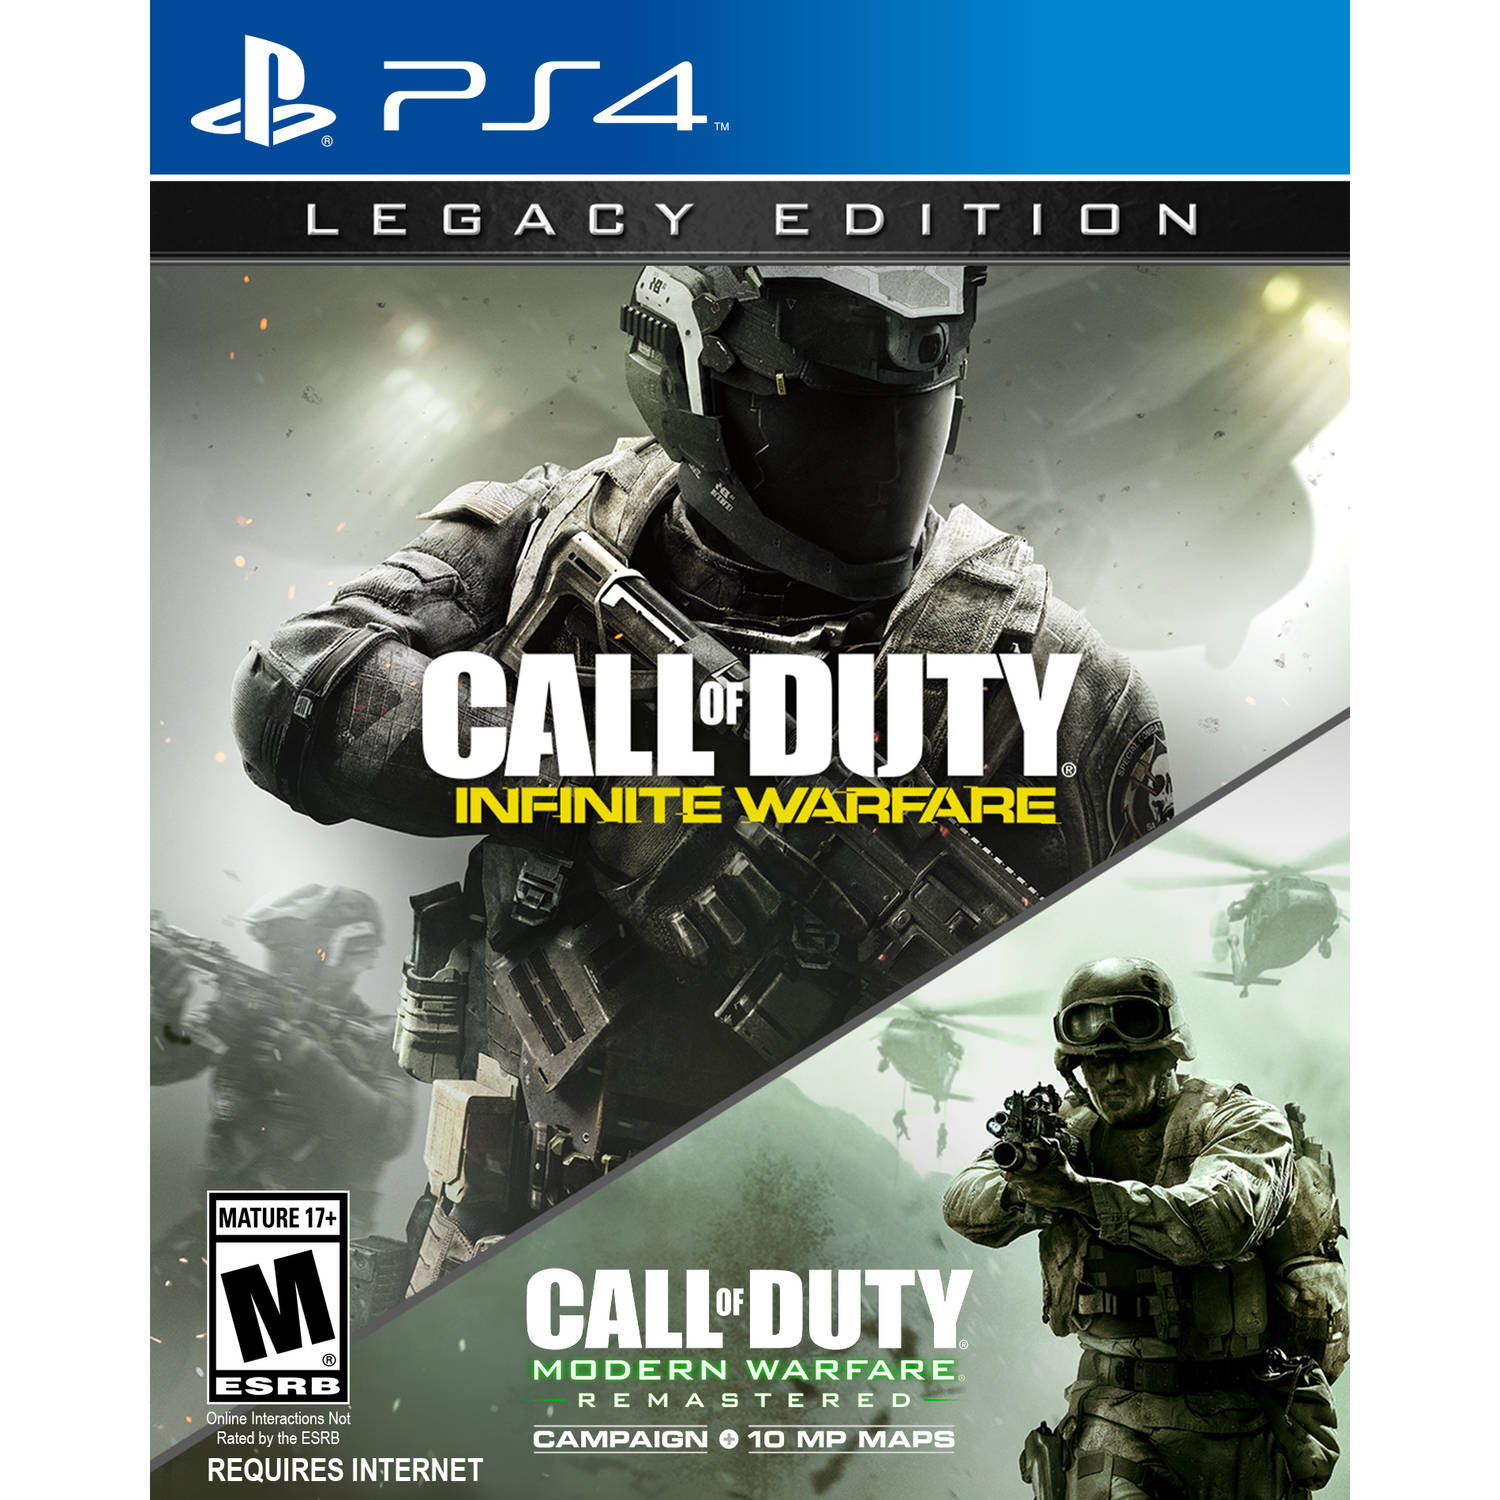 Call of Duty: Infinite Warfare Legacy Edition, Activision, PlayStation 4, 047875878570